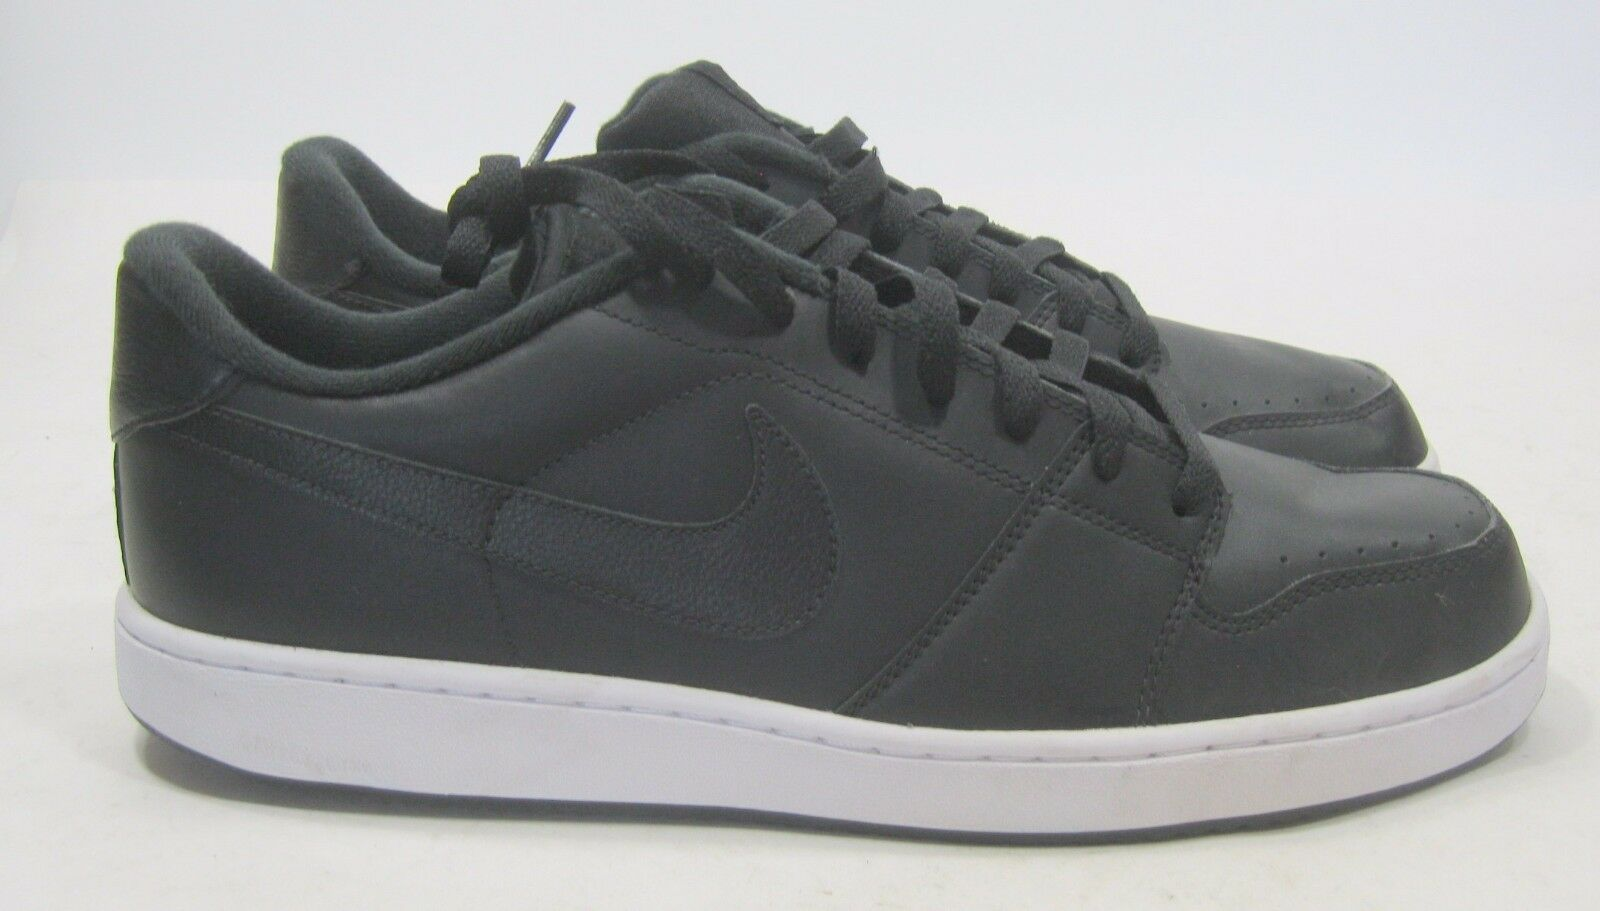 Cheap and beautiful fashion Nike Backboard Mens Athletic Sneakers Black 378336-005 Comfortable